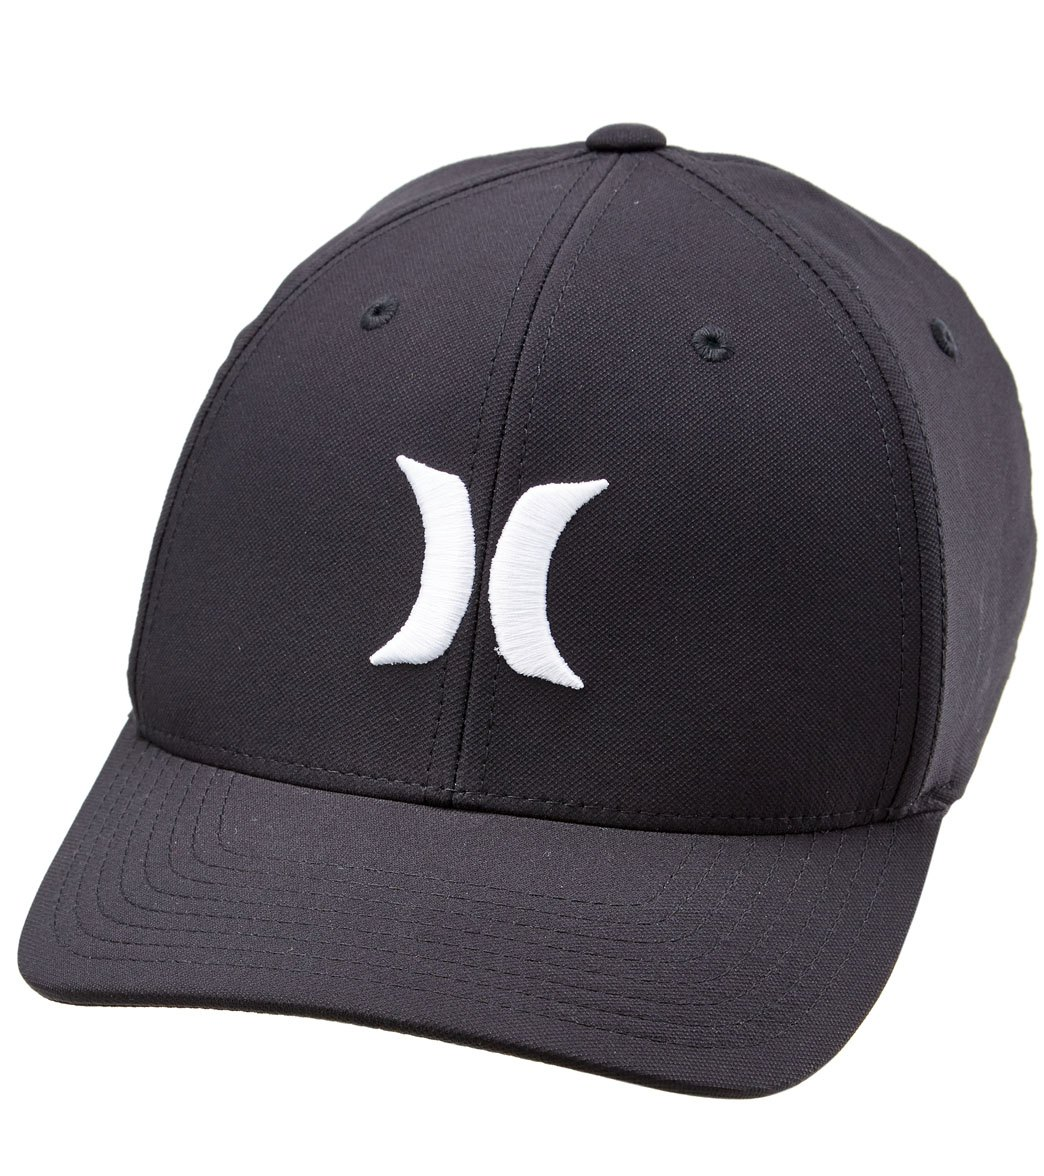 ad0ae8c22 Hurley Men's Dri-FIT One & Only Hat